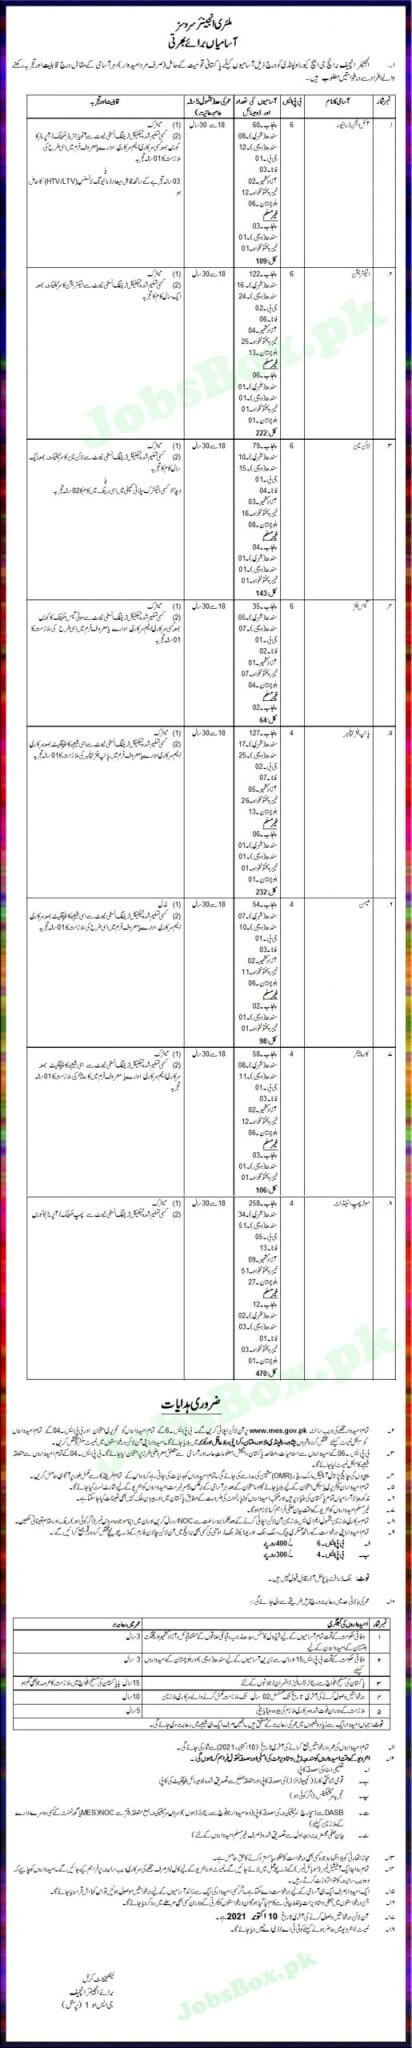 www.mes.gov.pk Jobs 2021 - MES Military Engineering Services Jobs 2021 in Pakistan - MES Jobs 2021 Advertisement